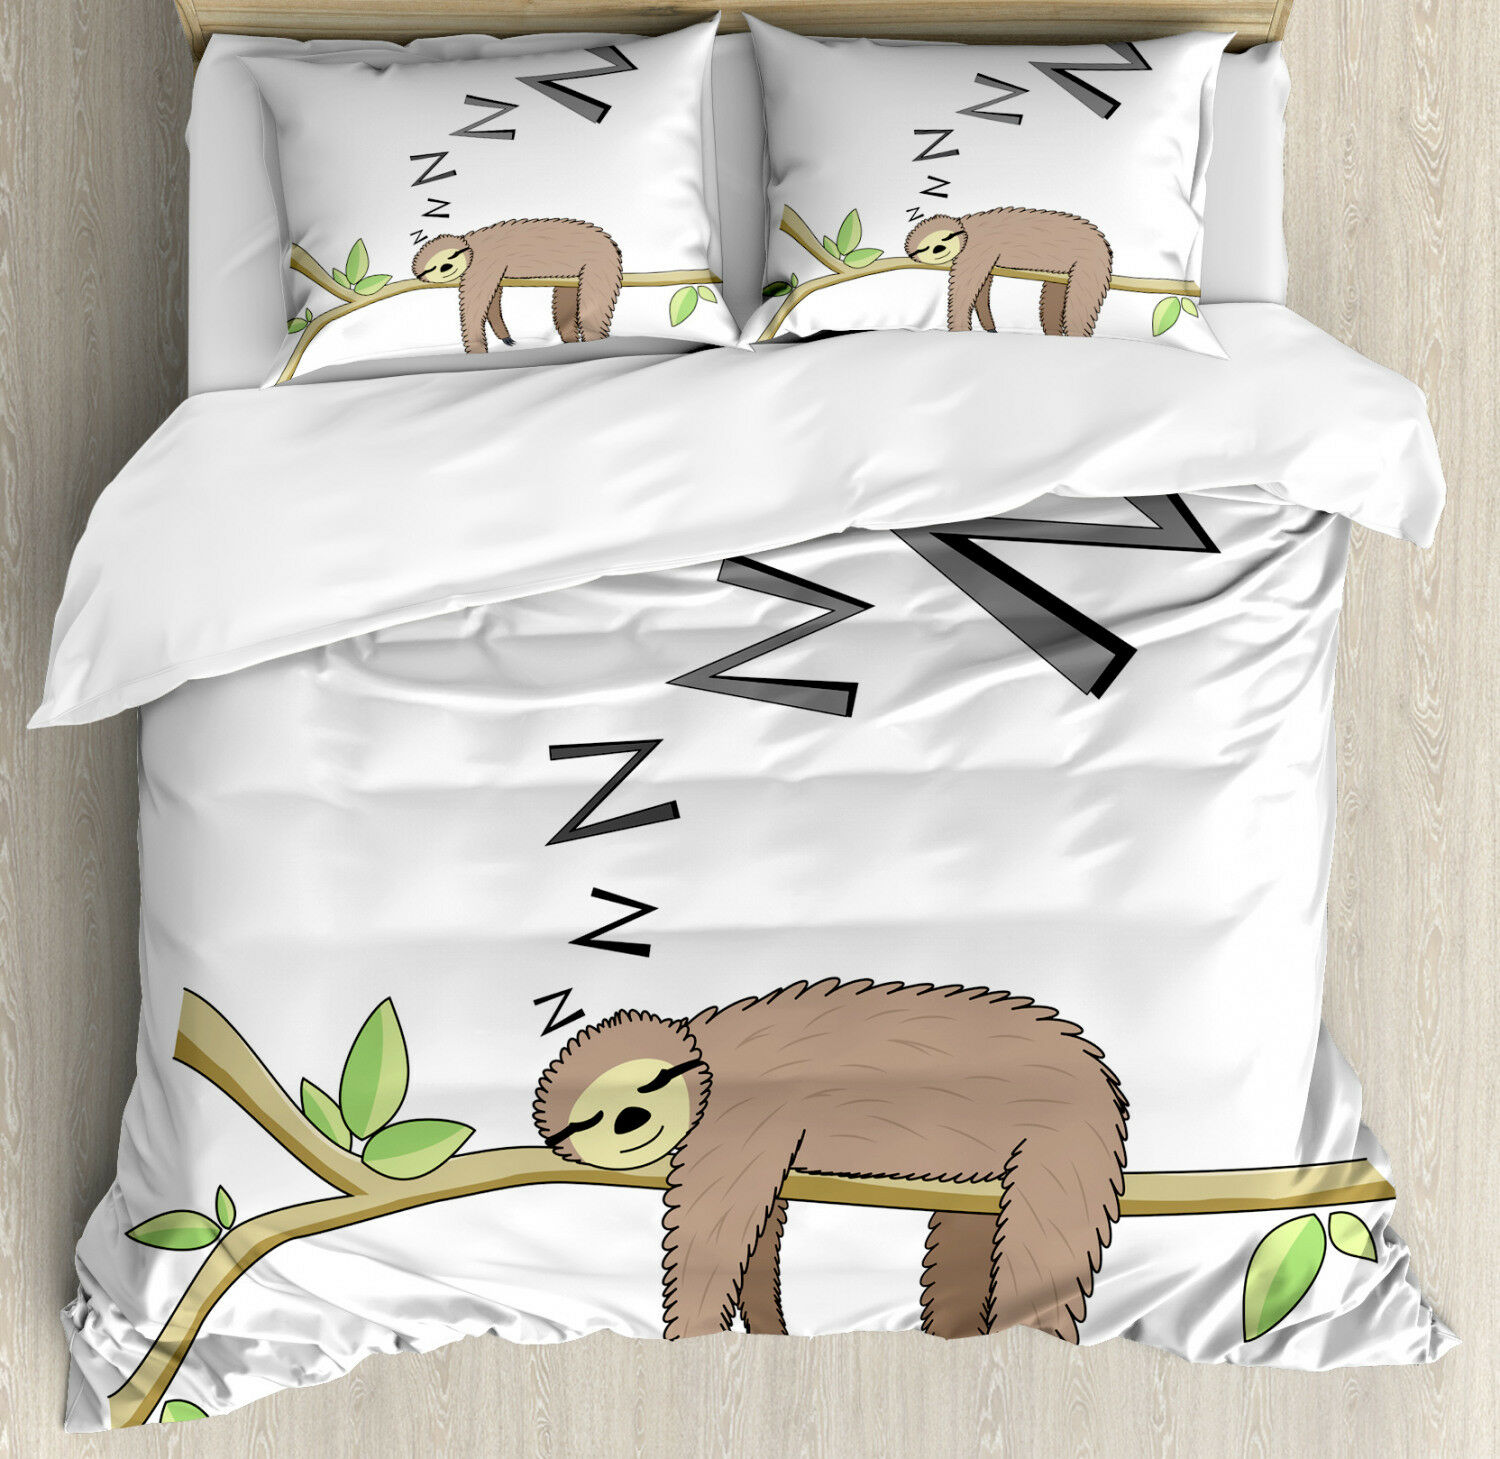 Sloth Duvet Cover Set with Pillow Shams Arboreal Mammal Sleeping Print